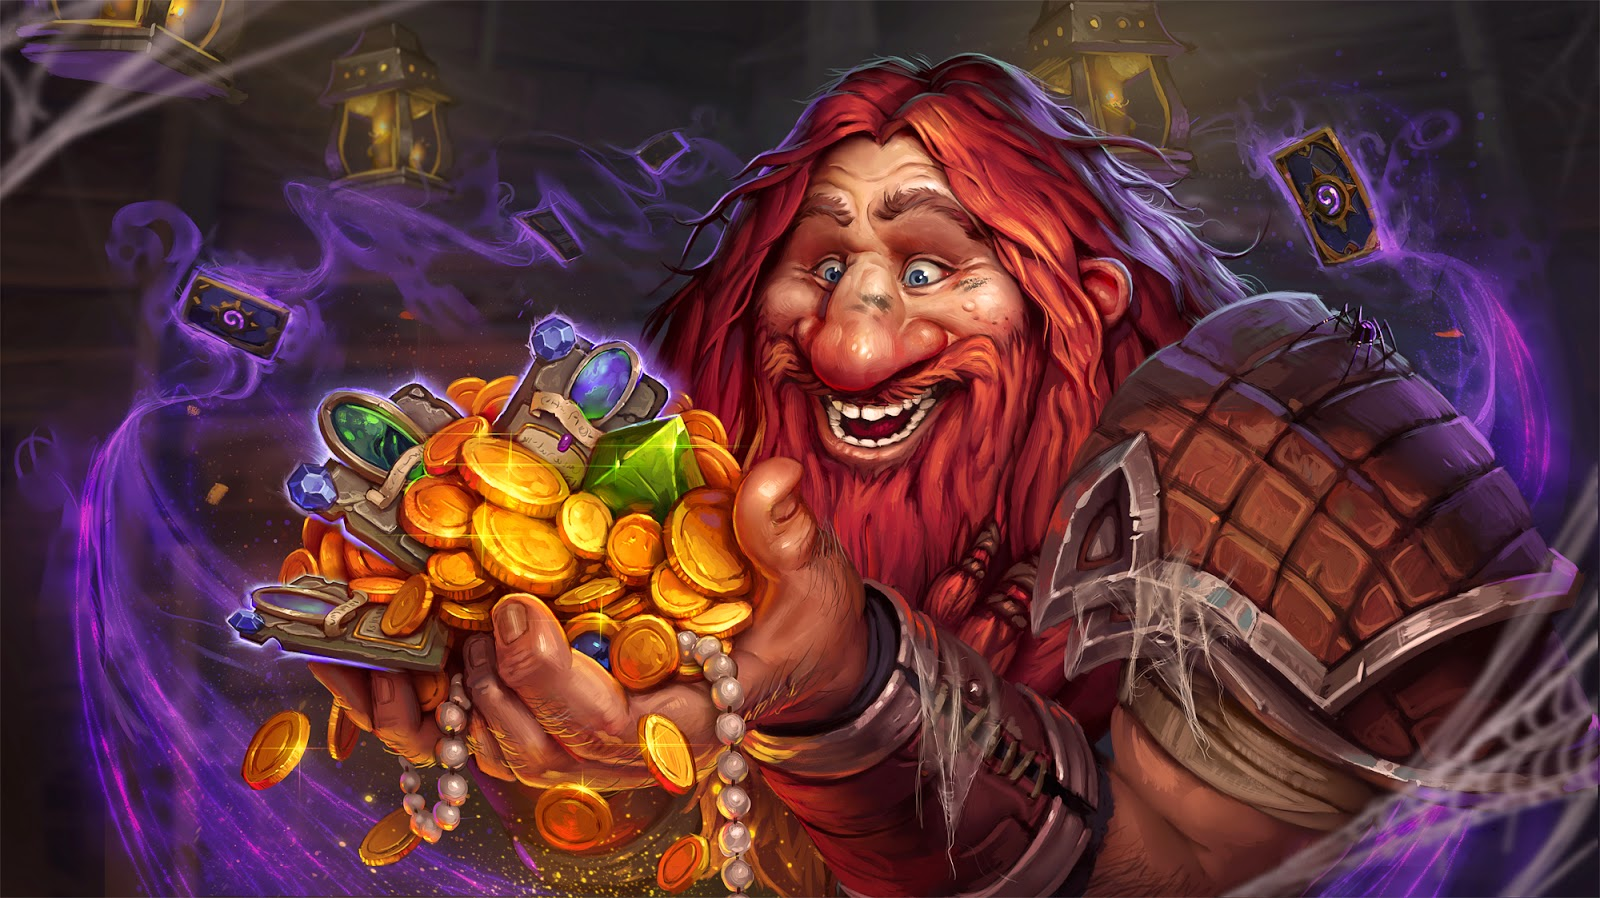 Dwarf collecting loot of gold and gems